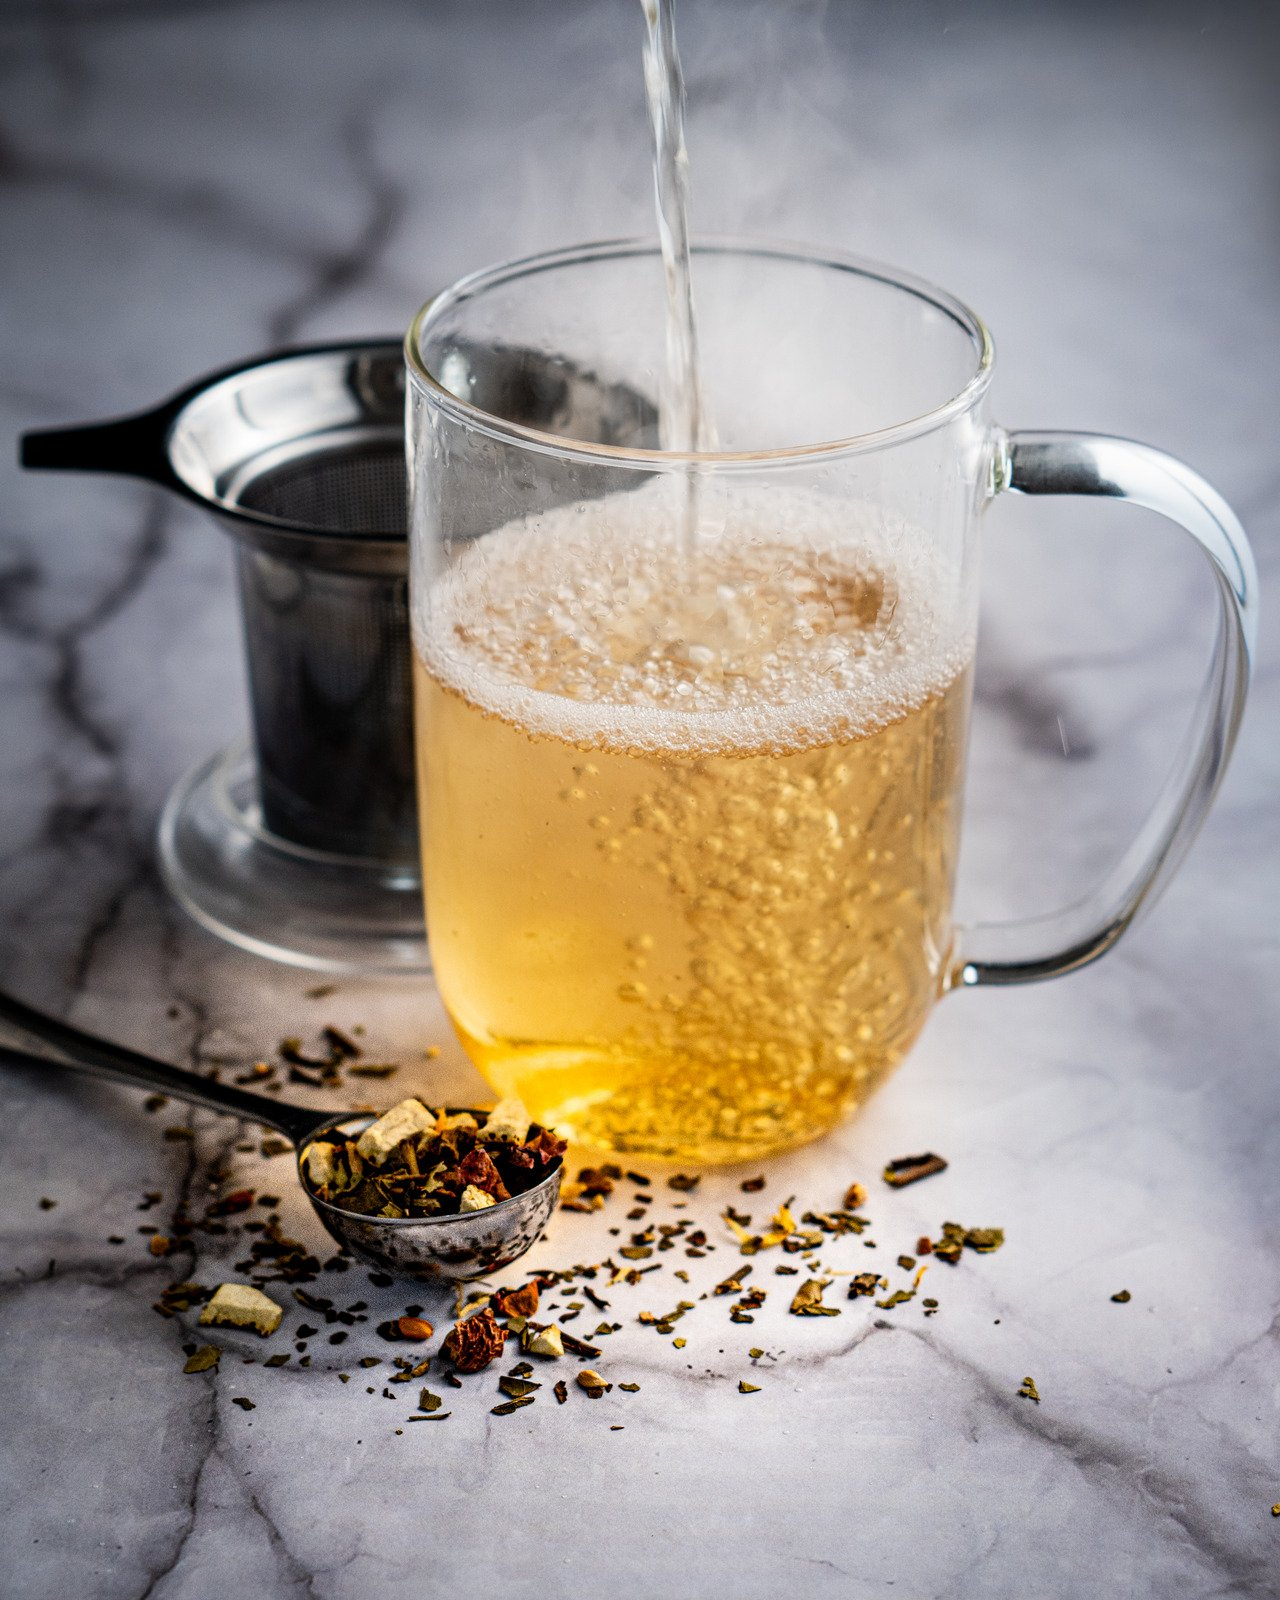 canva-fresh-brewed-tea-served-on-table-with-spoon-of-dry-herbs-MAEIjw-0Wdk